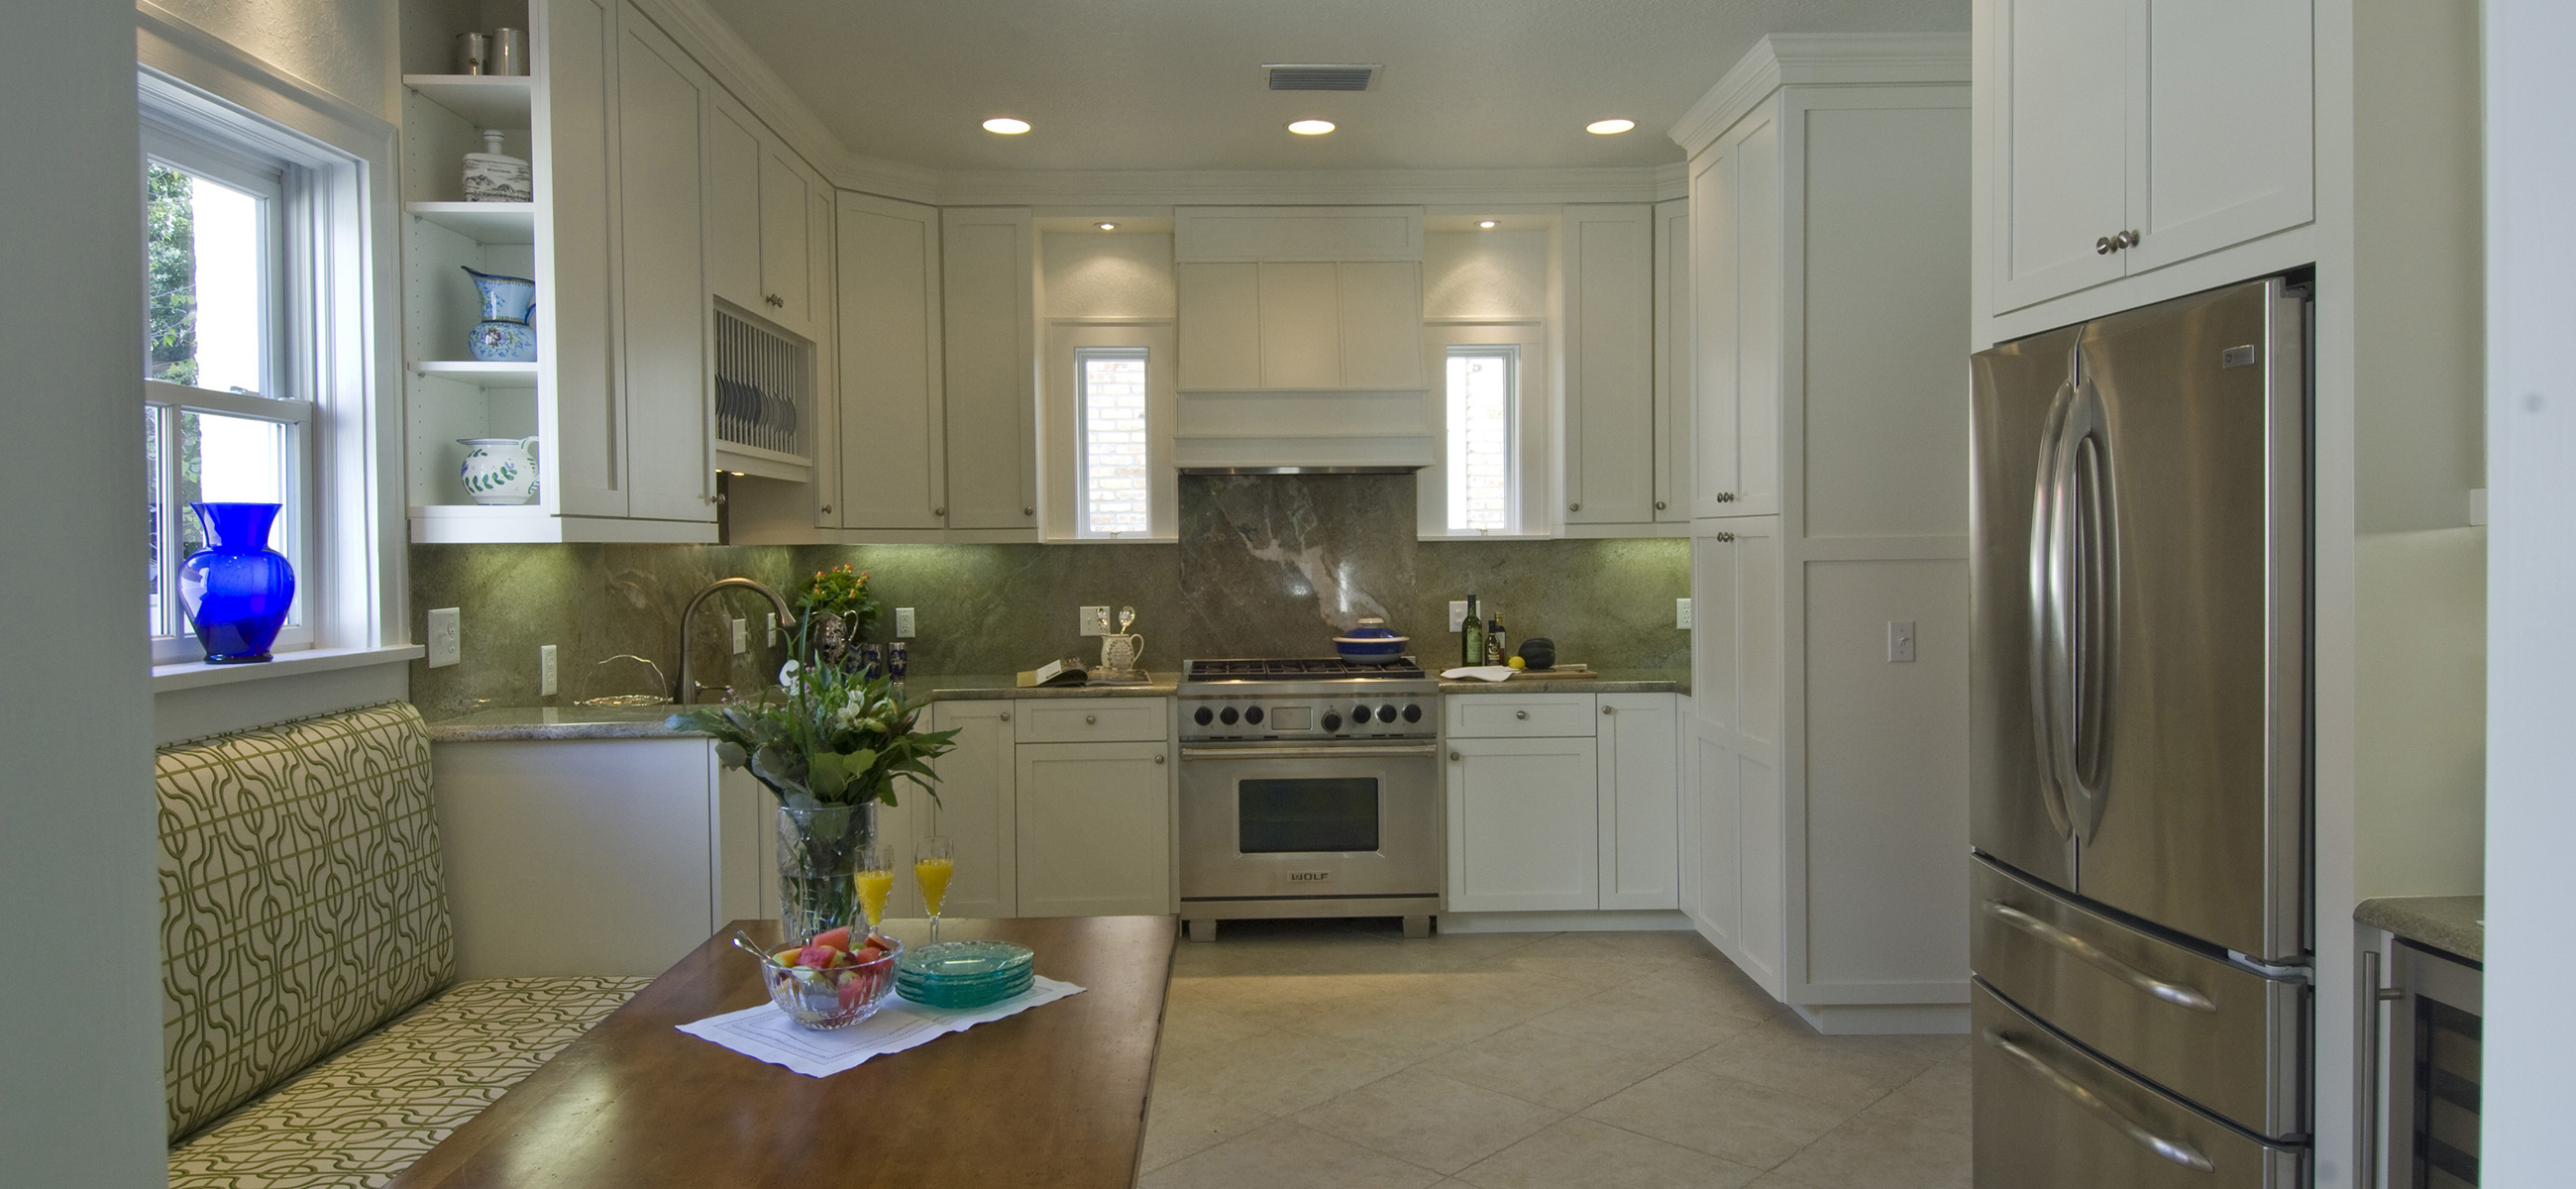 at home interior design consultants home interior renovations by remodeling consultants Interior Design Consulting